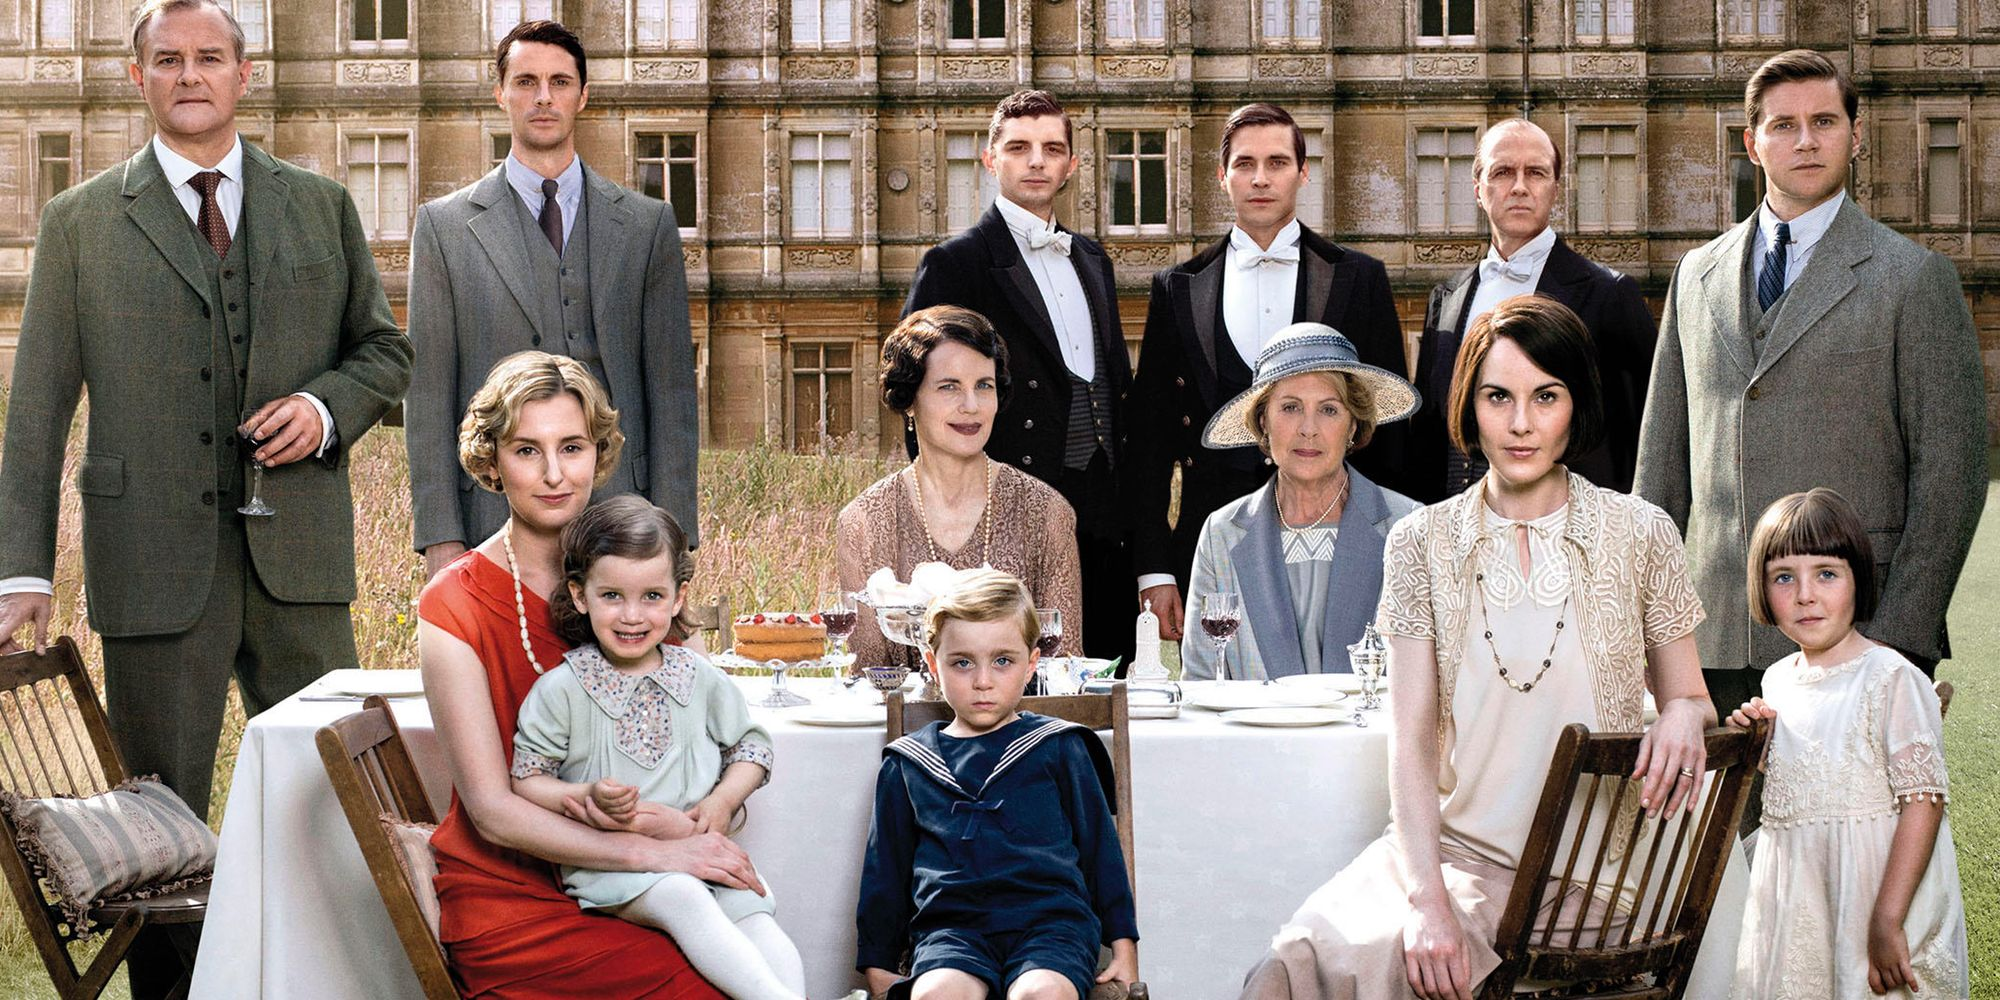 10 Things We Want To See In The New Downton Abbey Movie